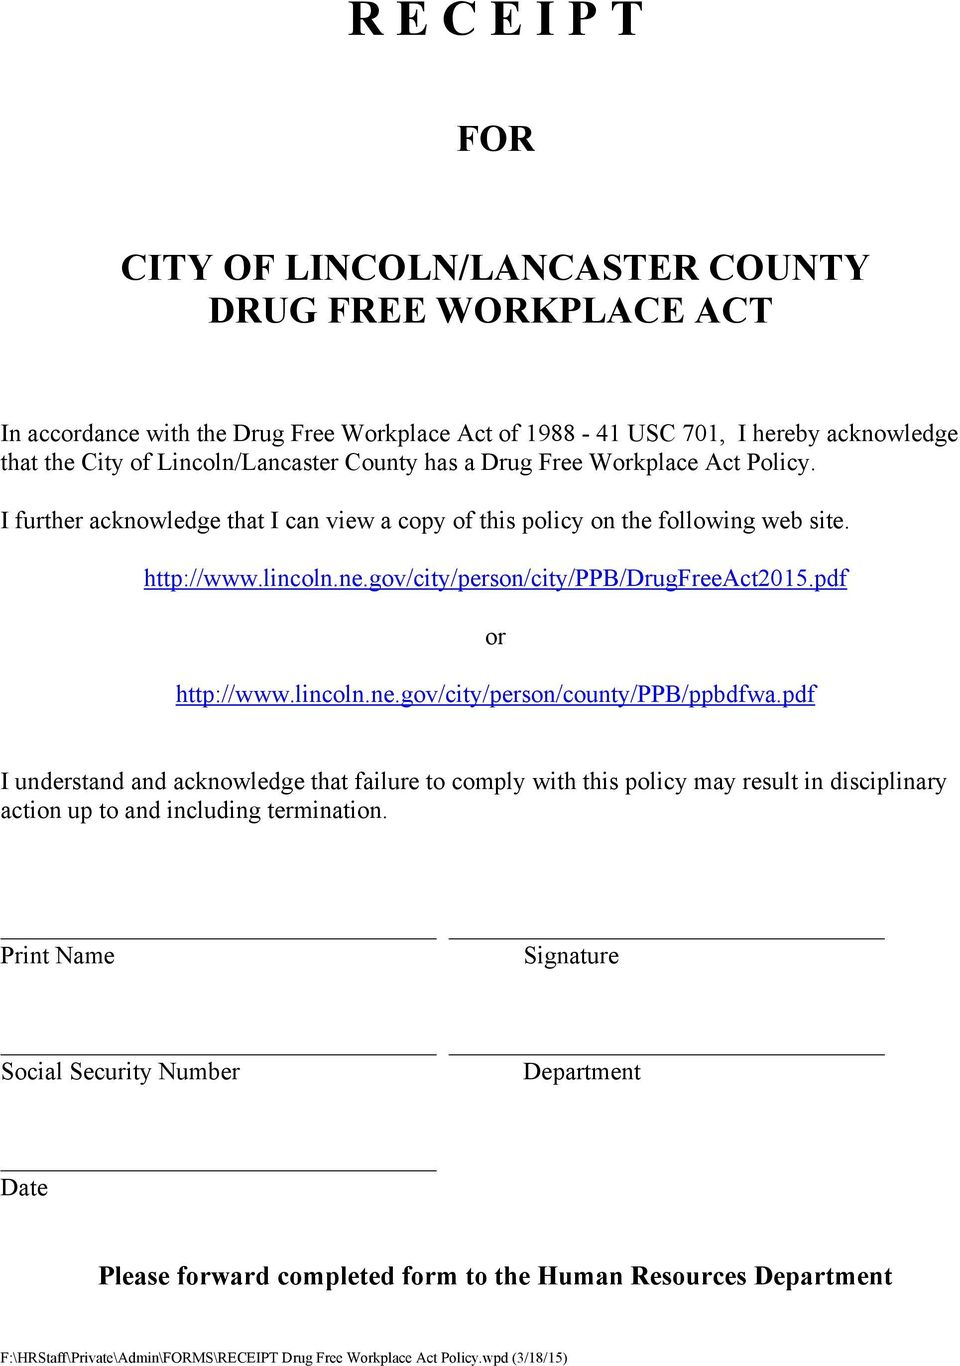 pdf or http://www.lincoln.ne.gov/city/person/county/ppb/ppbdfwa.